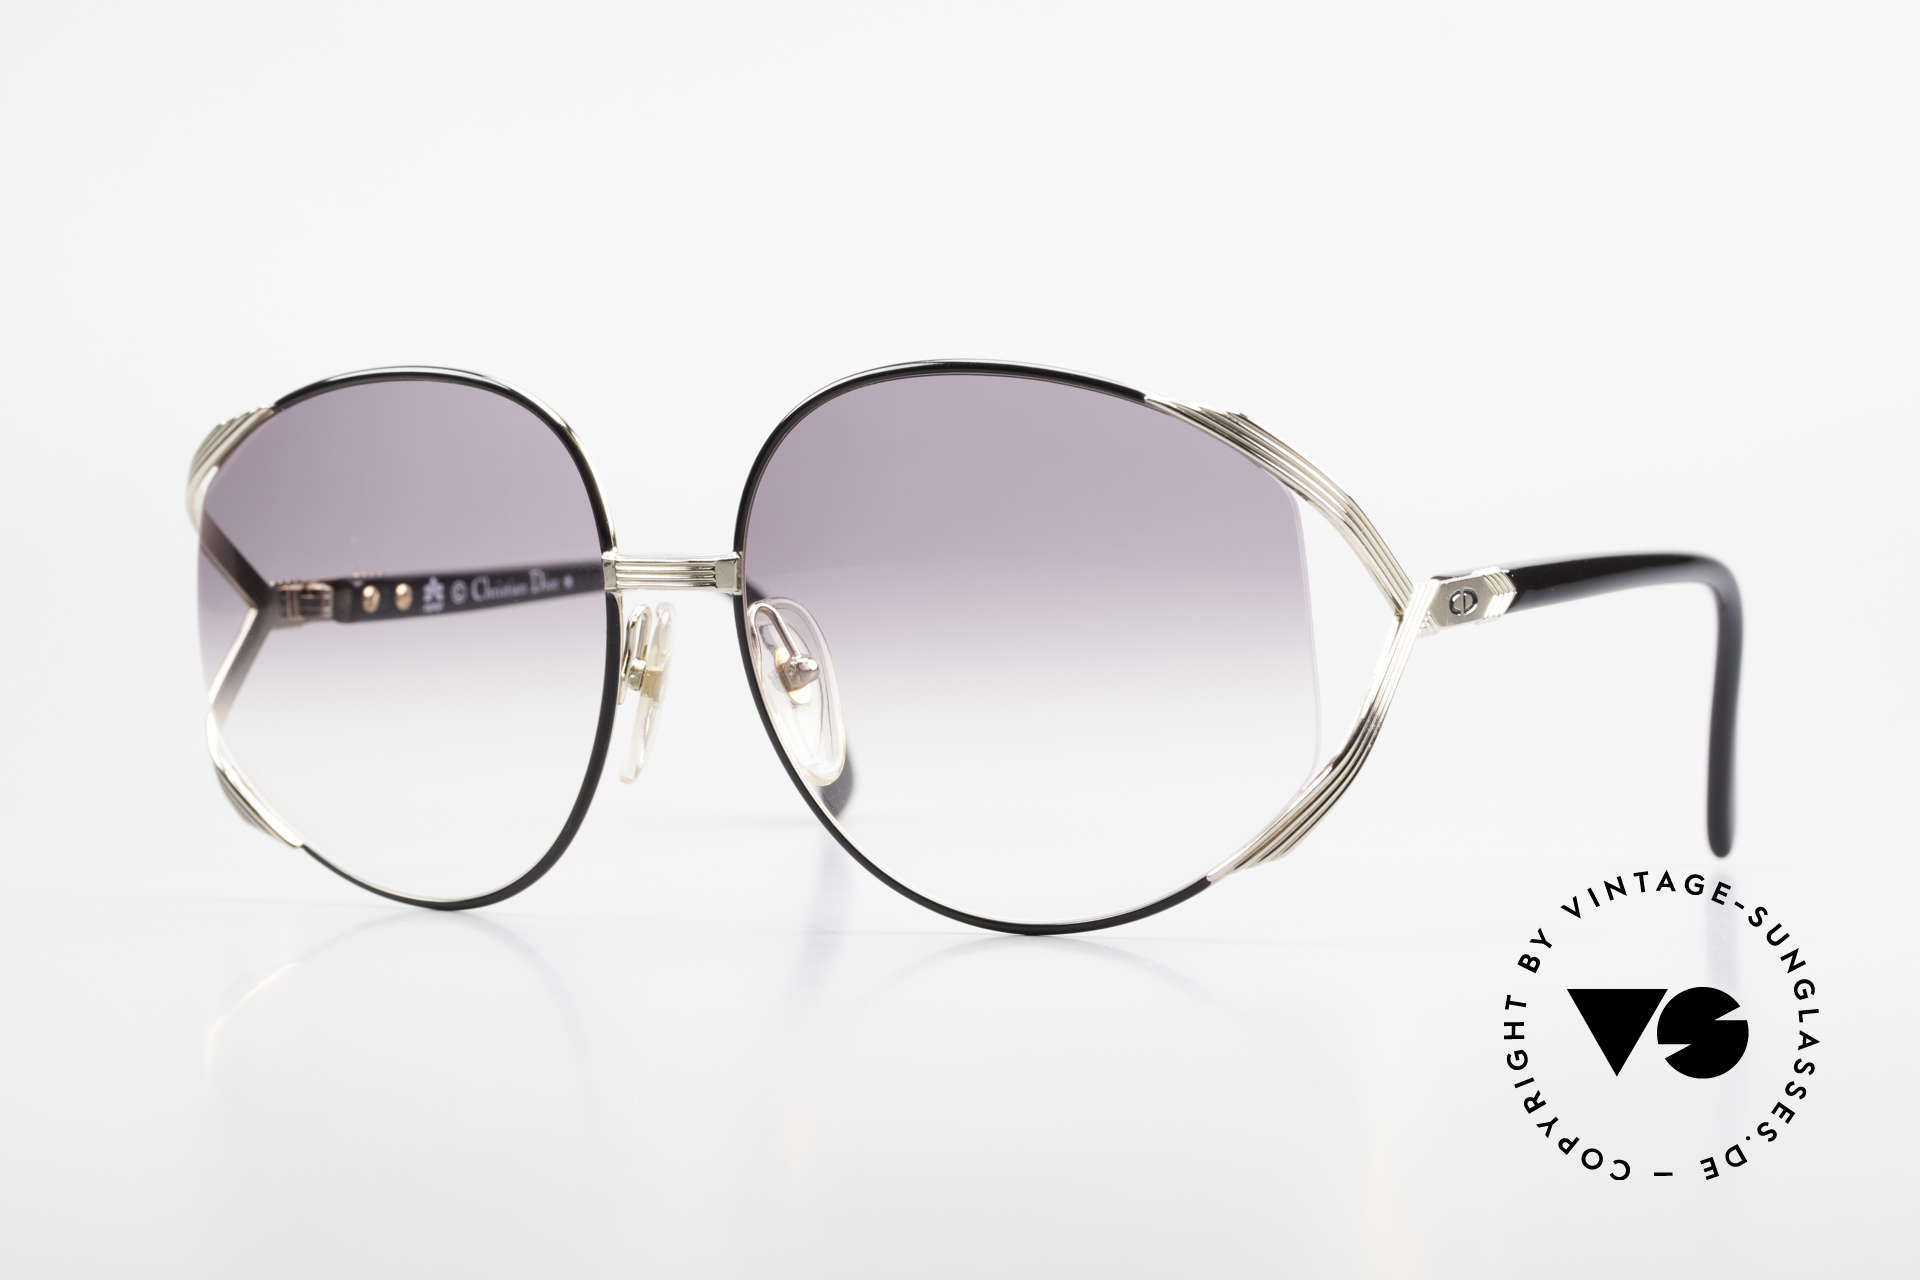 Christian Dior 2250 XL Oversized Shades 80's Ladies, oversized XL vintage ladies sunglasses by Christian Dior, Made for Women